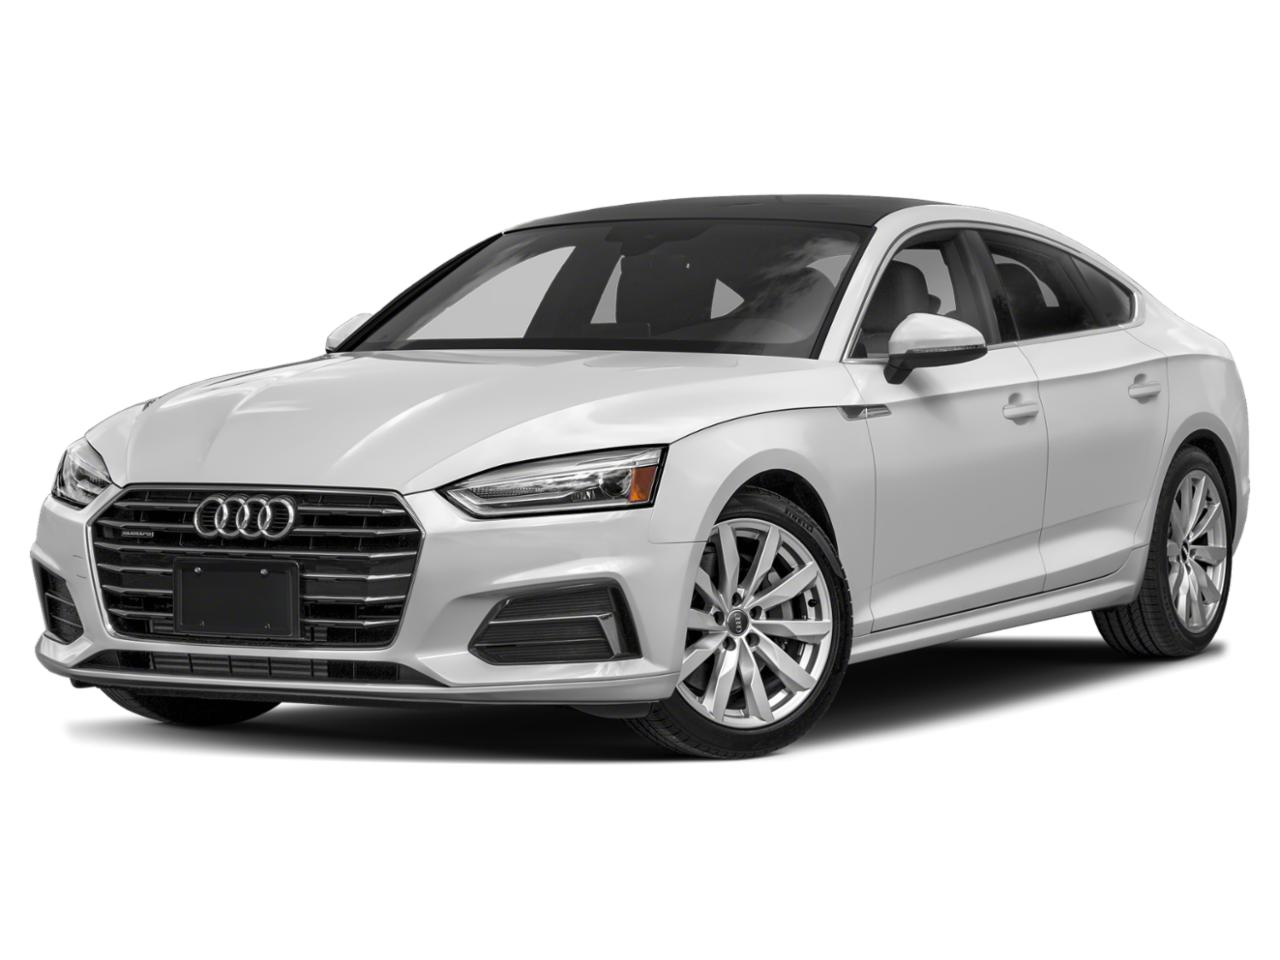 2019 Audi A5 Sportback Vehicle Photo in Columbus, GA 31904